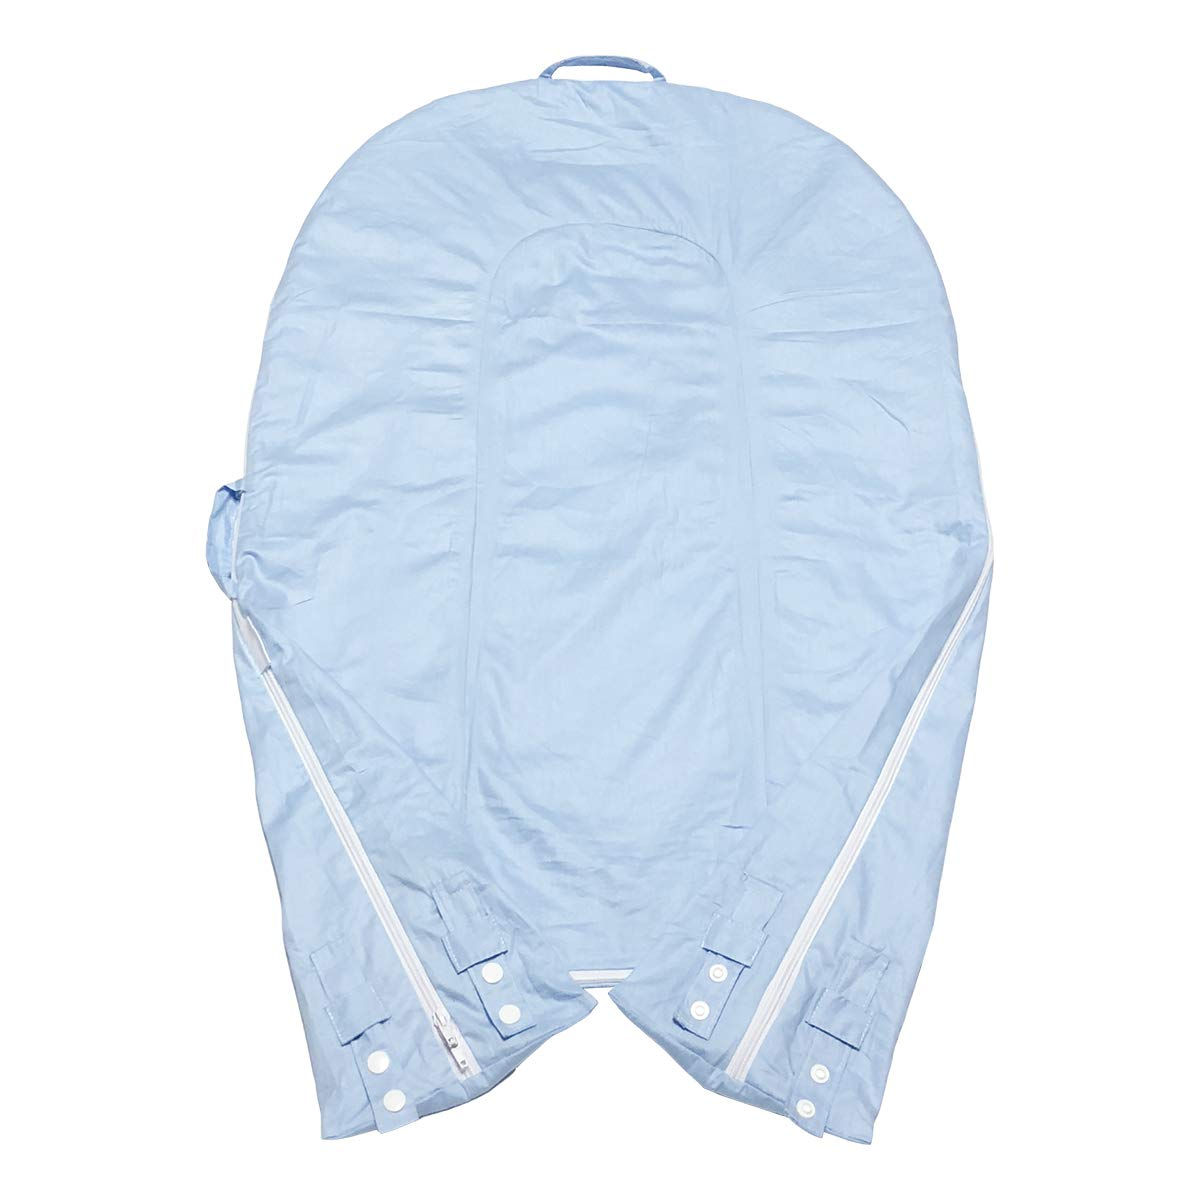 Fits Dockatot Deluxe+️ SimpleTot Baby Nest Sleep Pod Replacement Extra Cover White